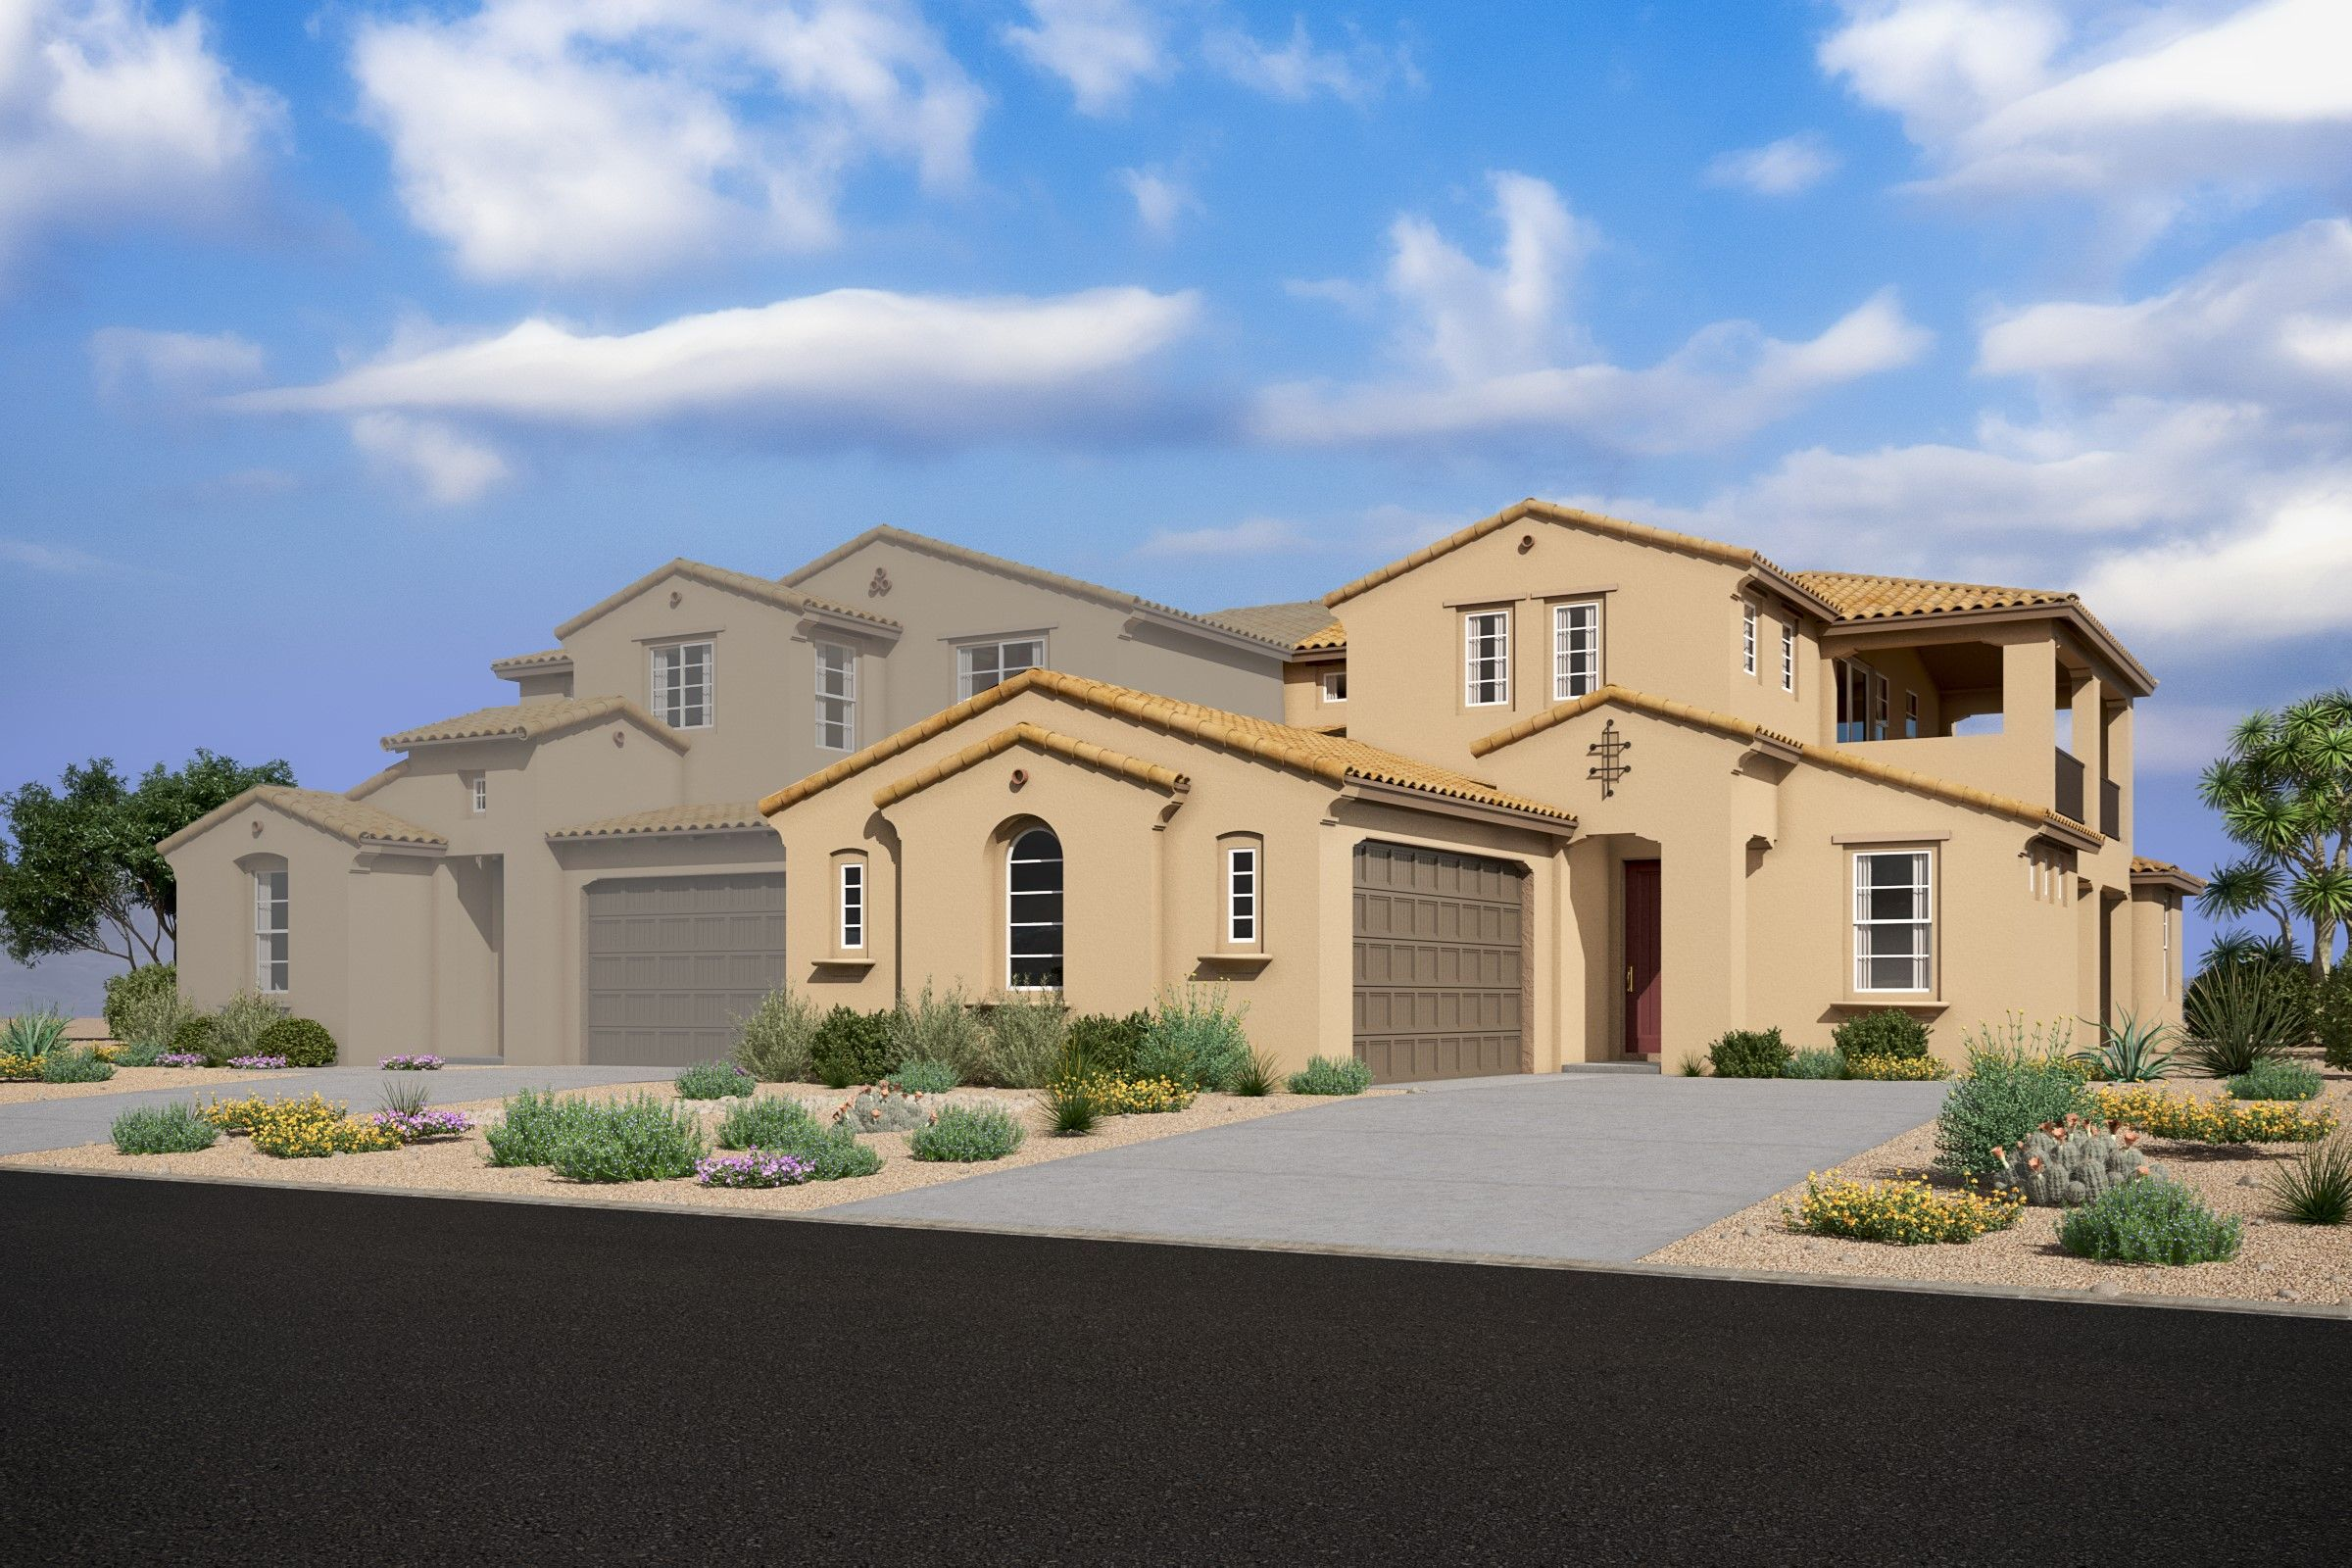 Multi Family for Sale at Summit At Silverstone - Crest 74th St And Pinnacle Peak Rd Scottsdale, Arizona 85255 United States